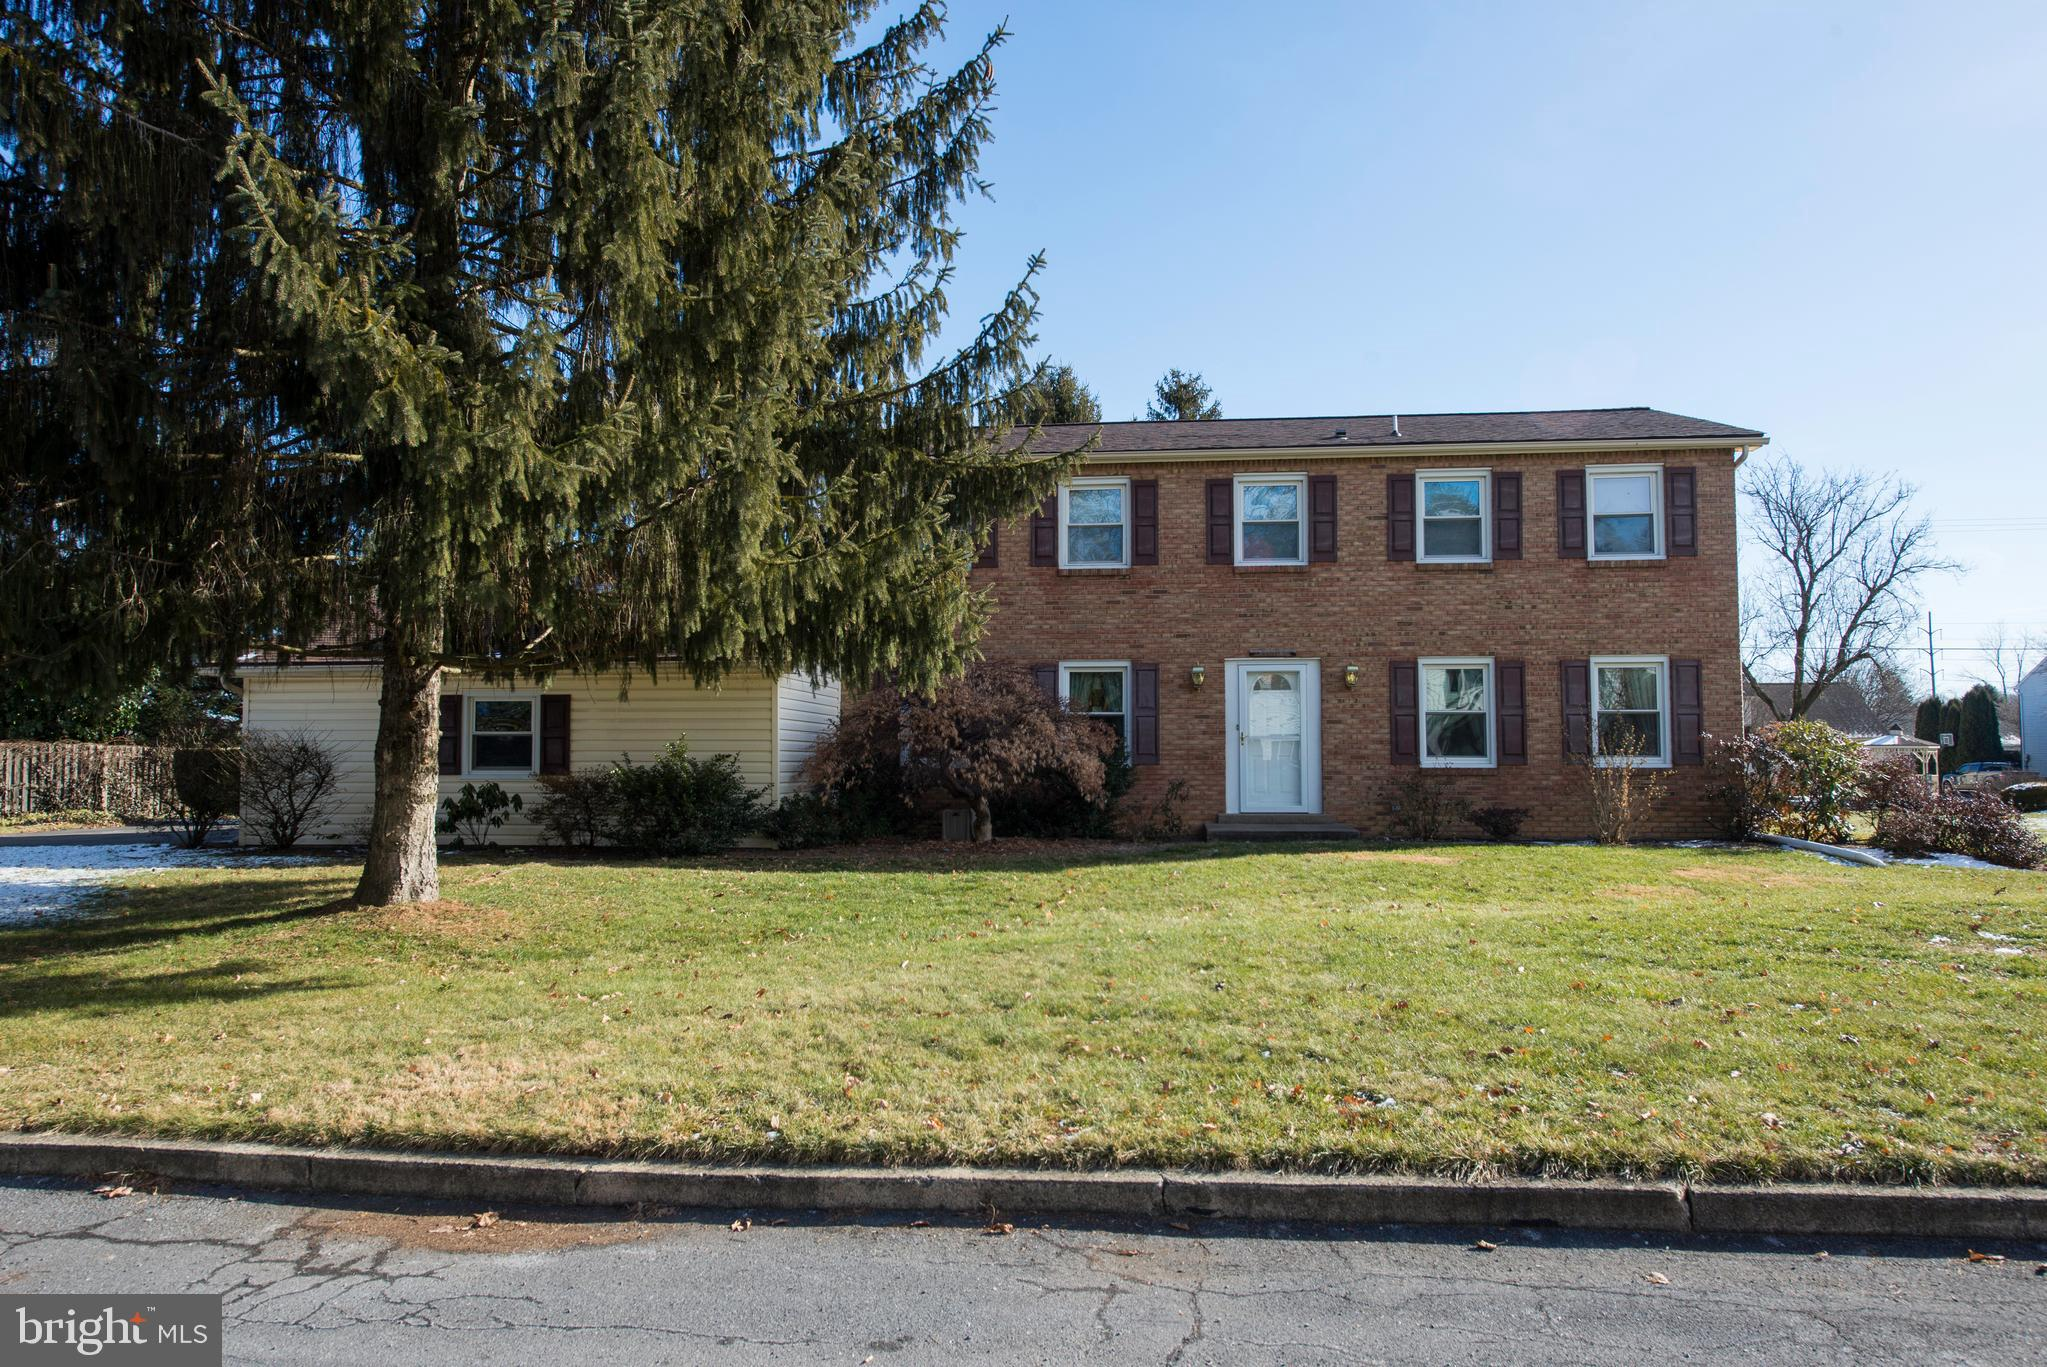 1230 CLEARVIEW CIRCLE, ALLENTOWN, PA 18103